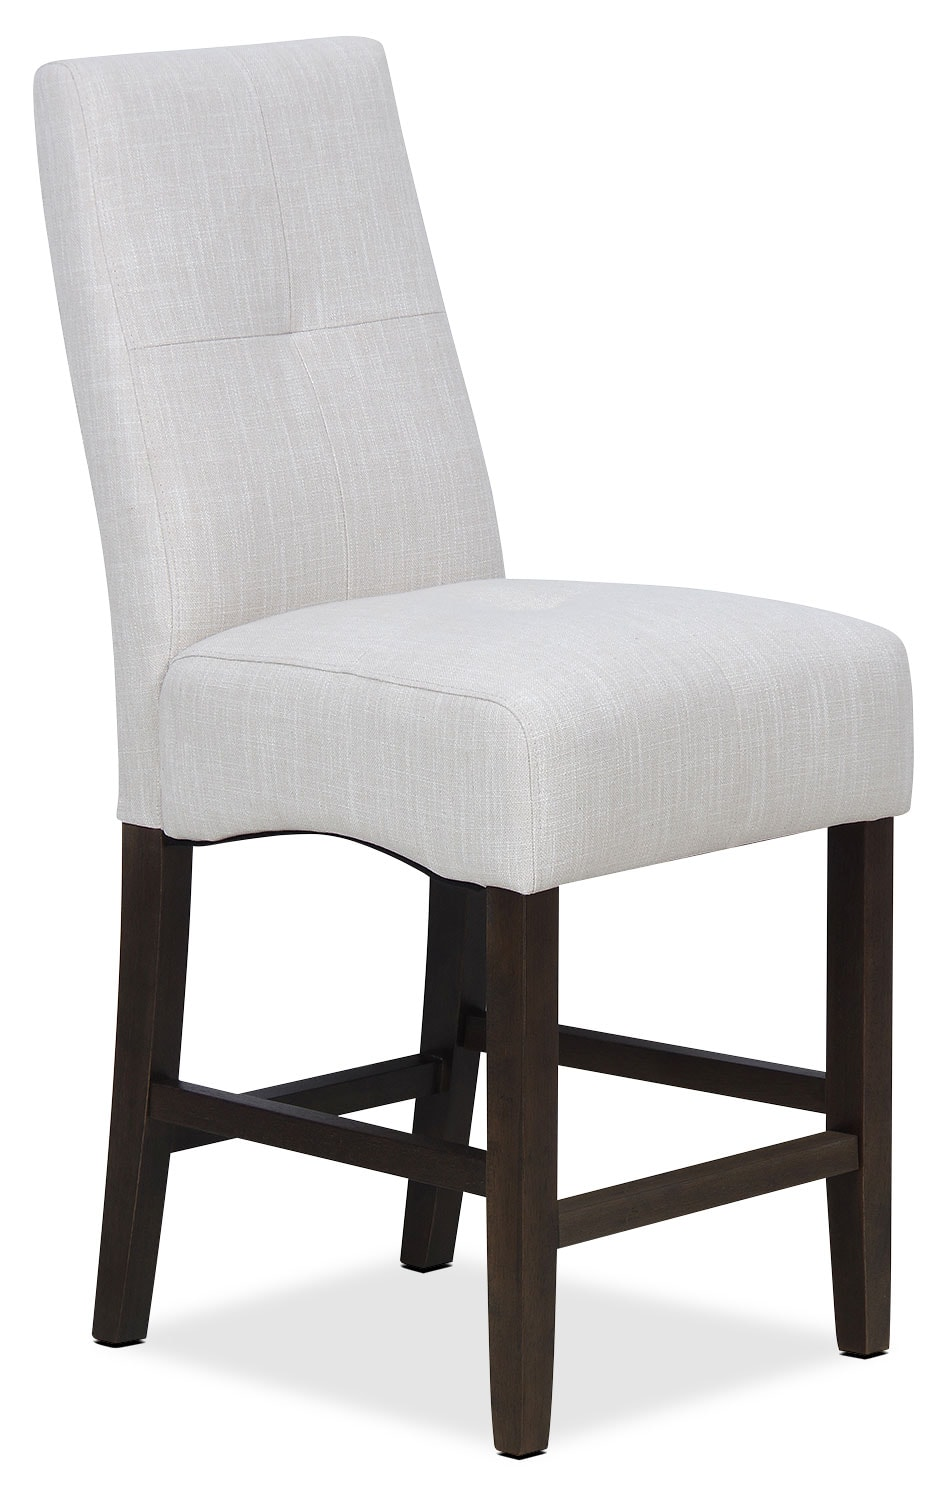 Soho Counter-Height Dining Chair – Ivory